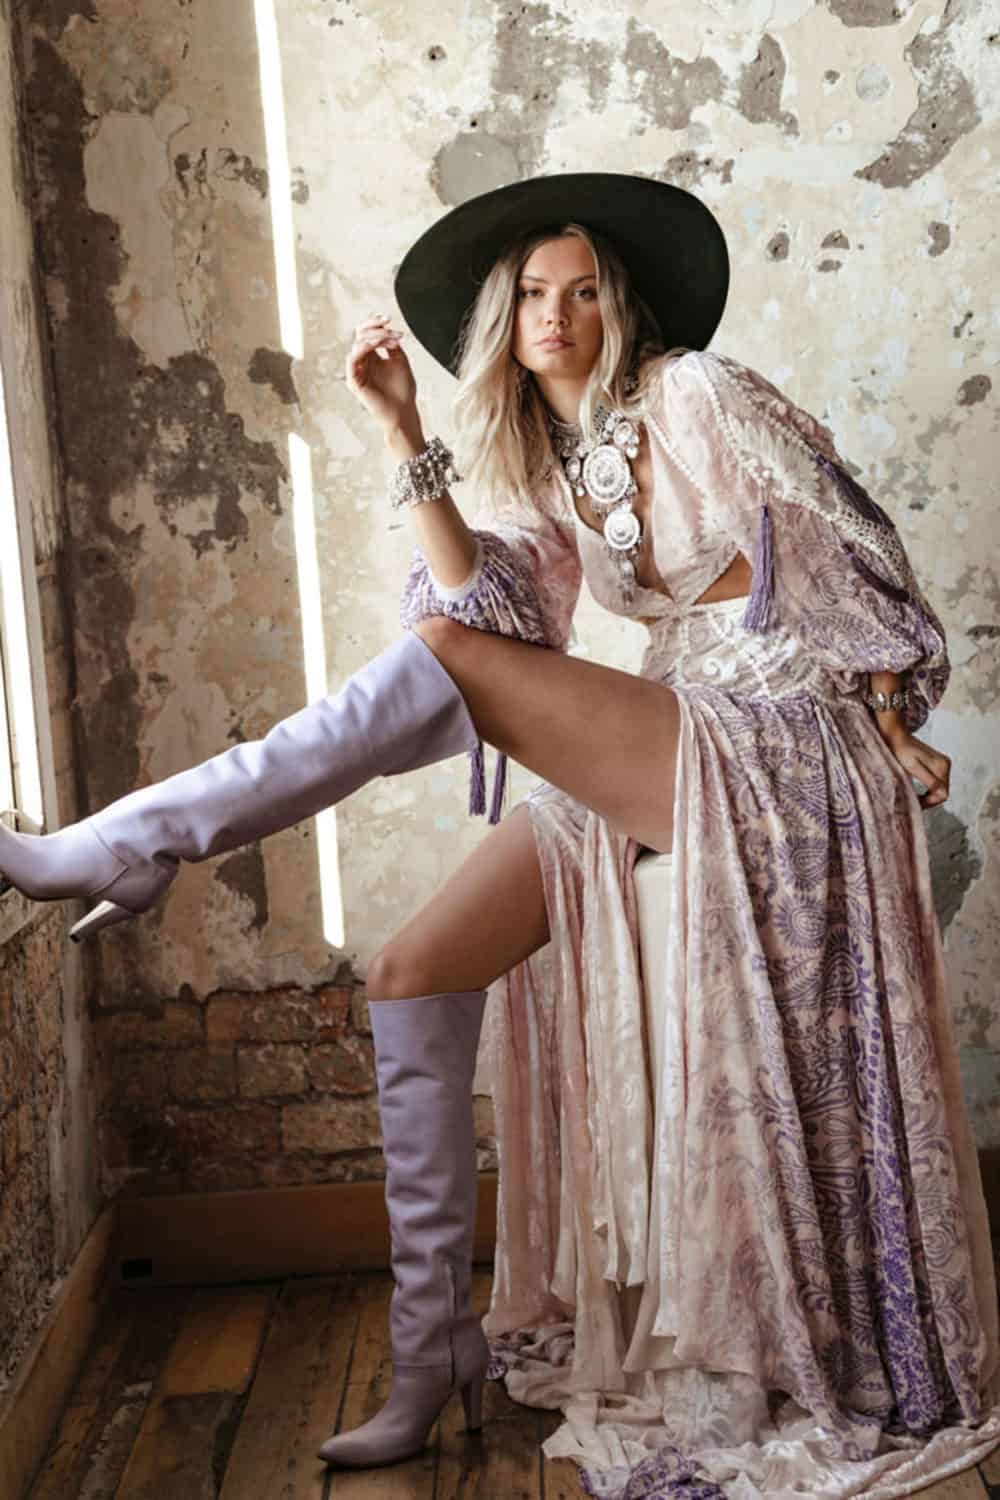 rue de seine new collection cowgirl magazine